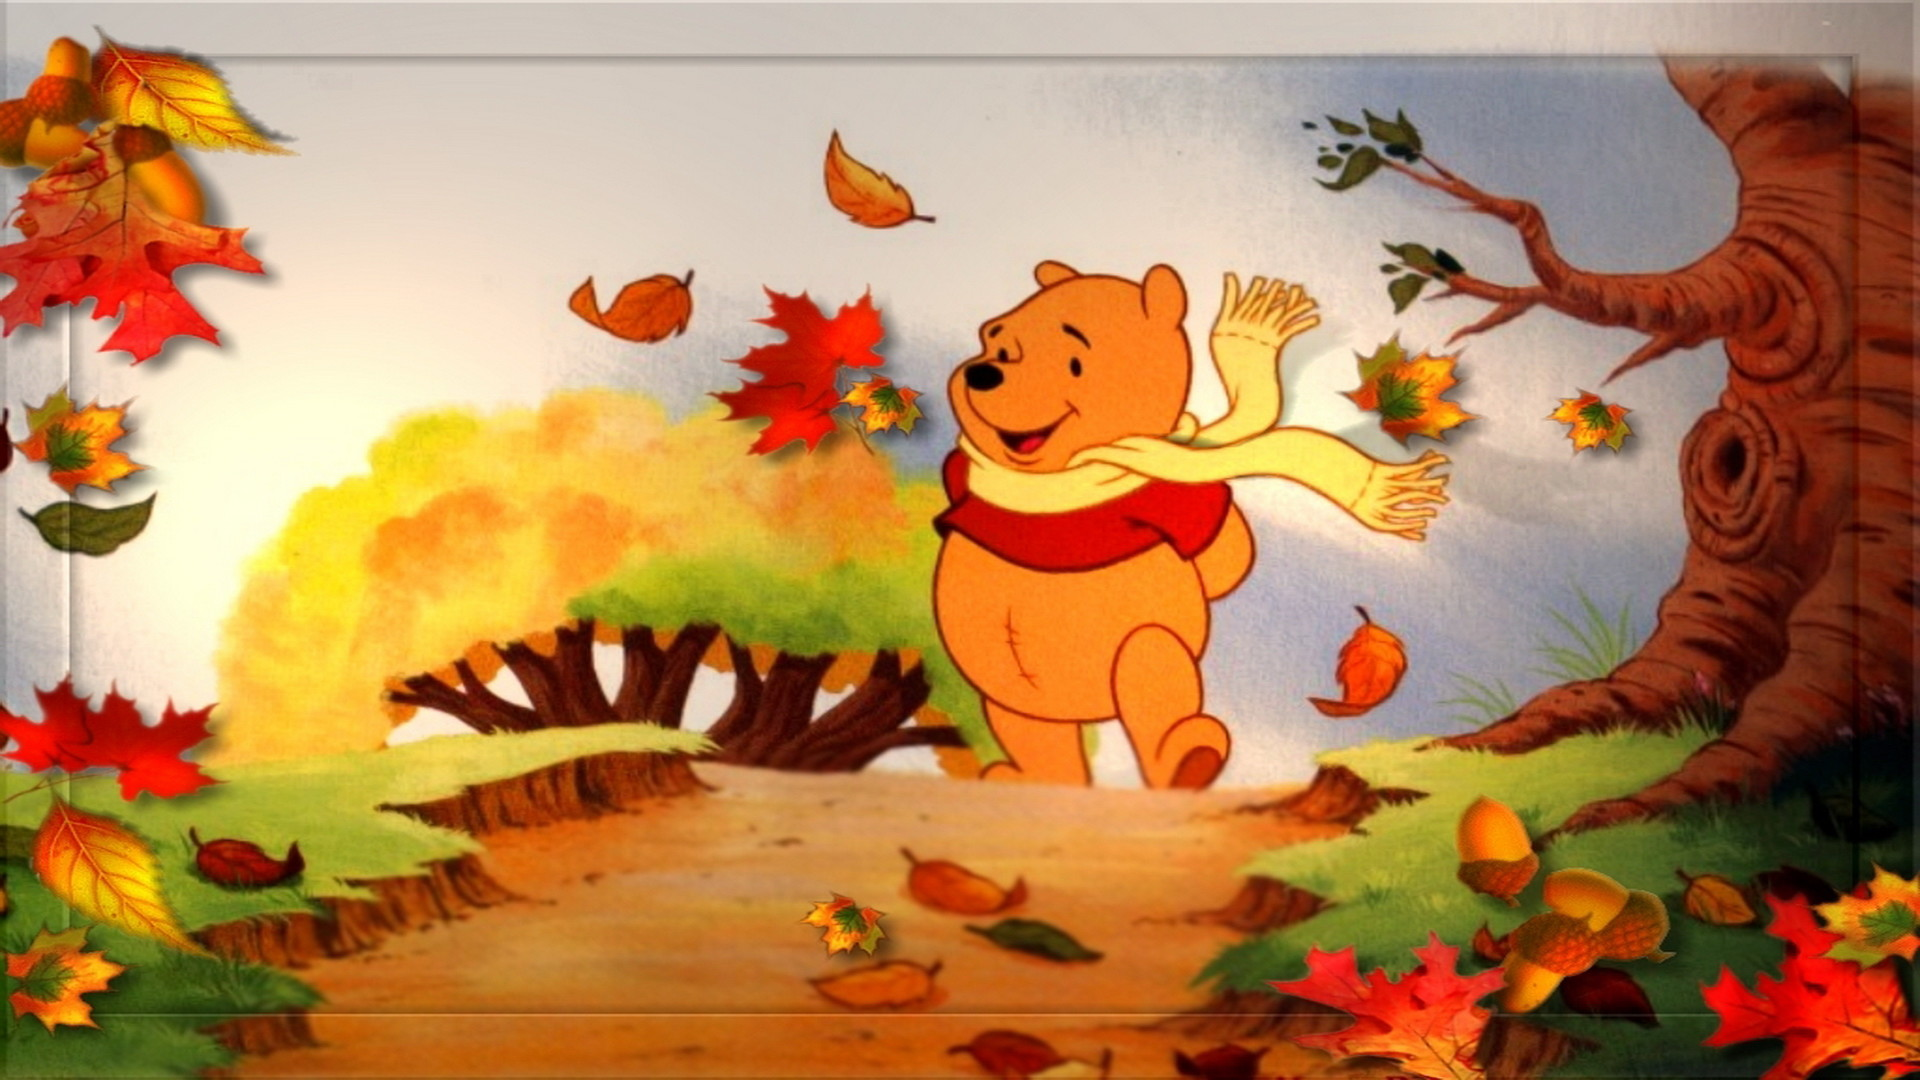 1920x1080 thanksgiving wallpaper: Thanksgiving Wallpaper Desktop (66+ Images